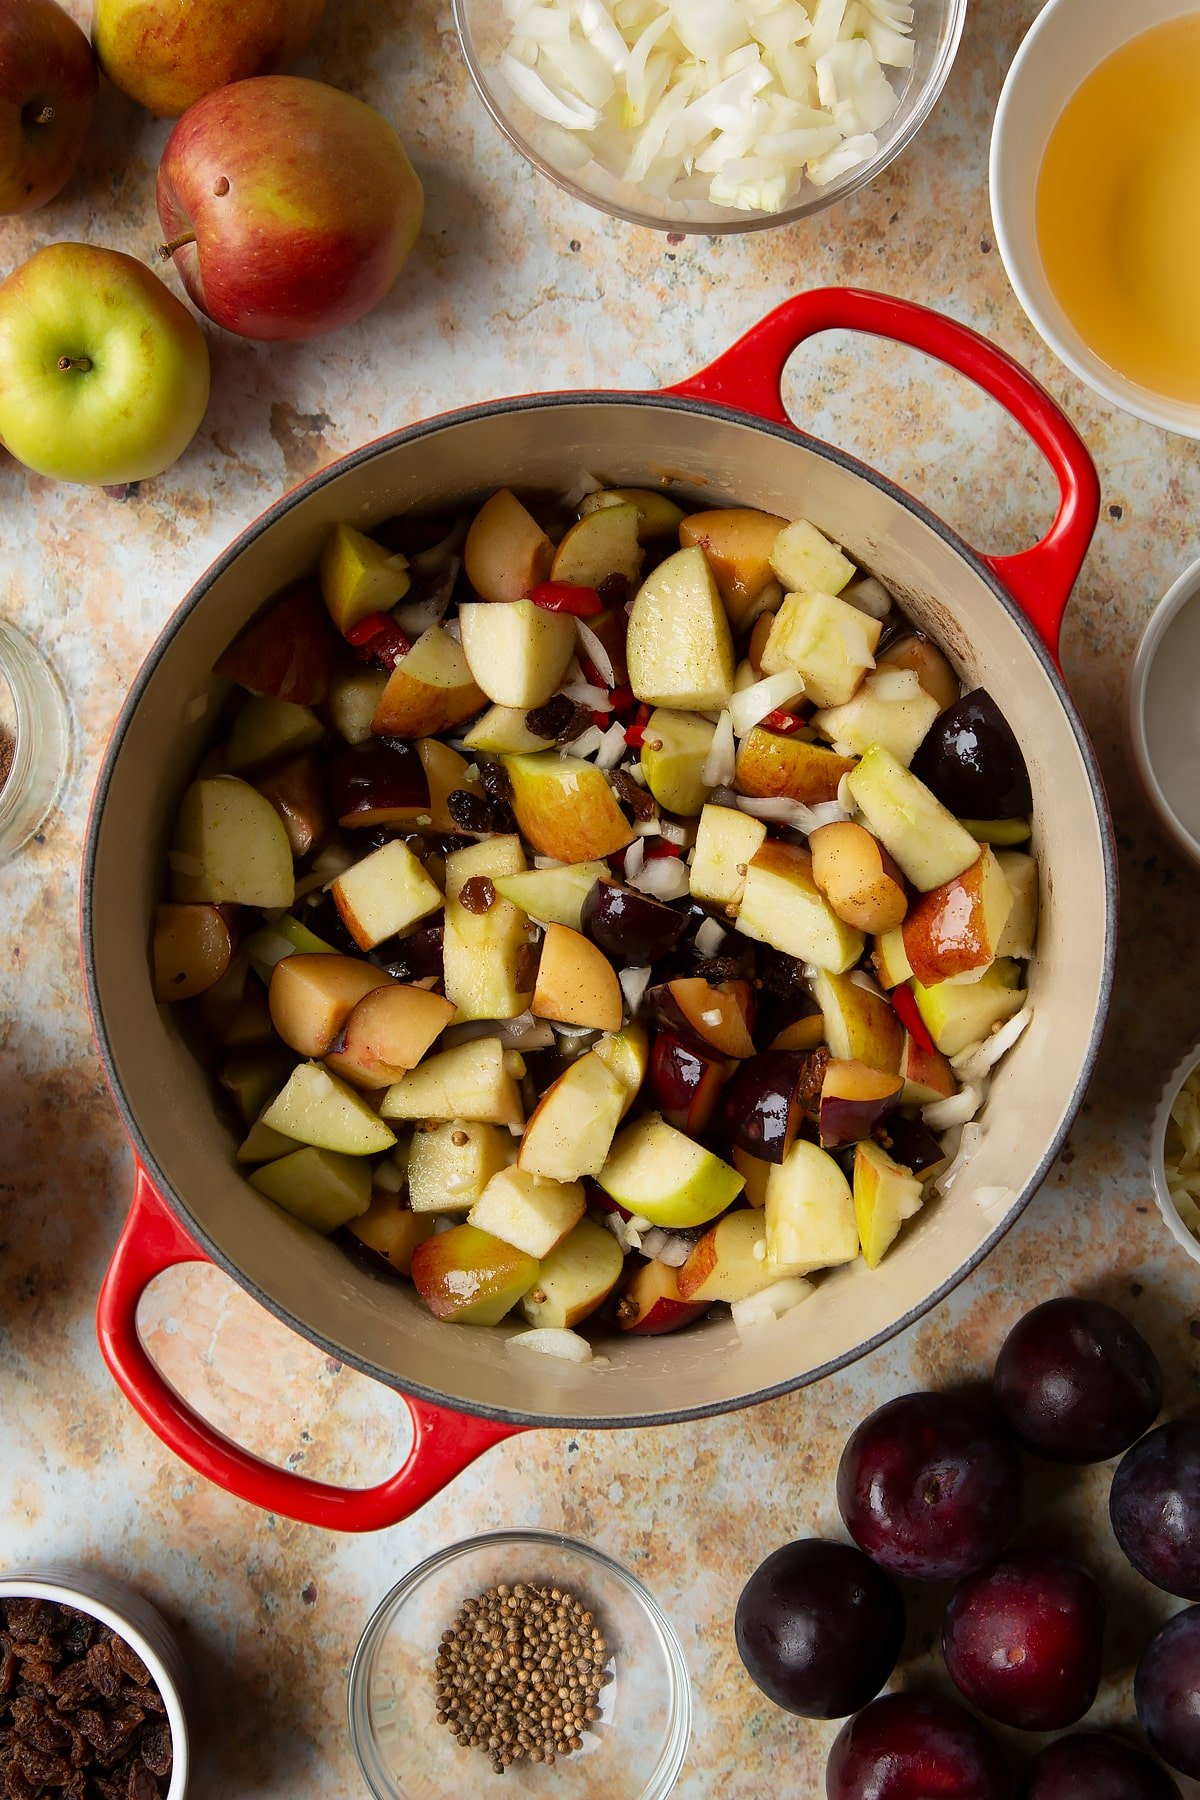 Fruit, spices, vinegar and water in a large pan. Ingredients to make a fruit chutney recipe surround the pan.